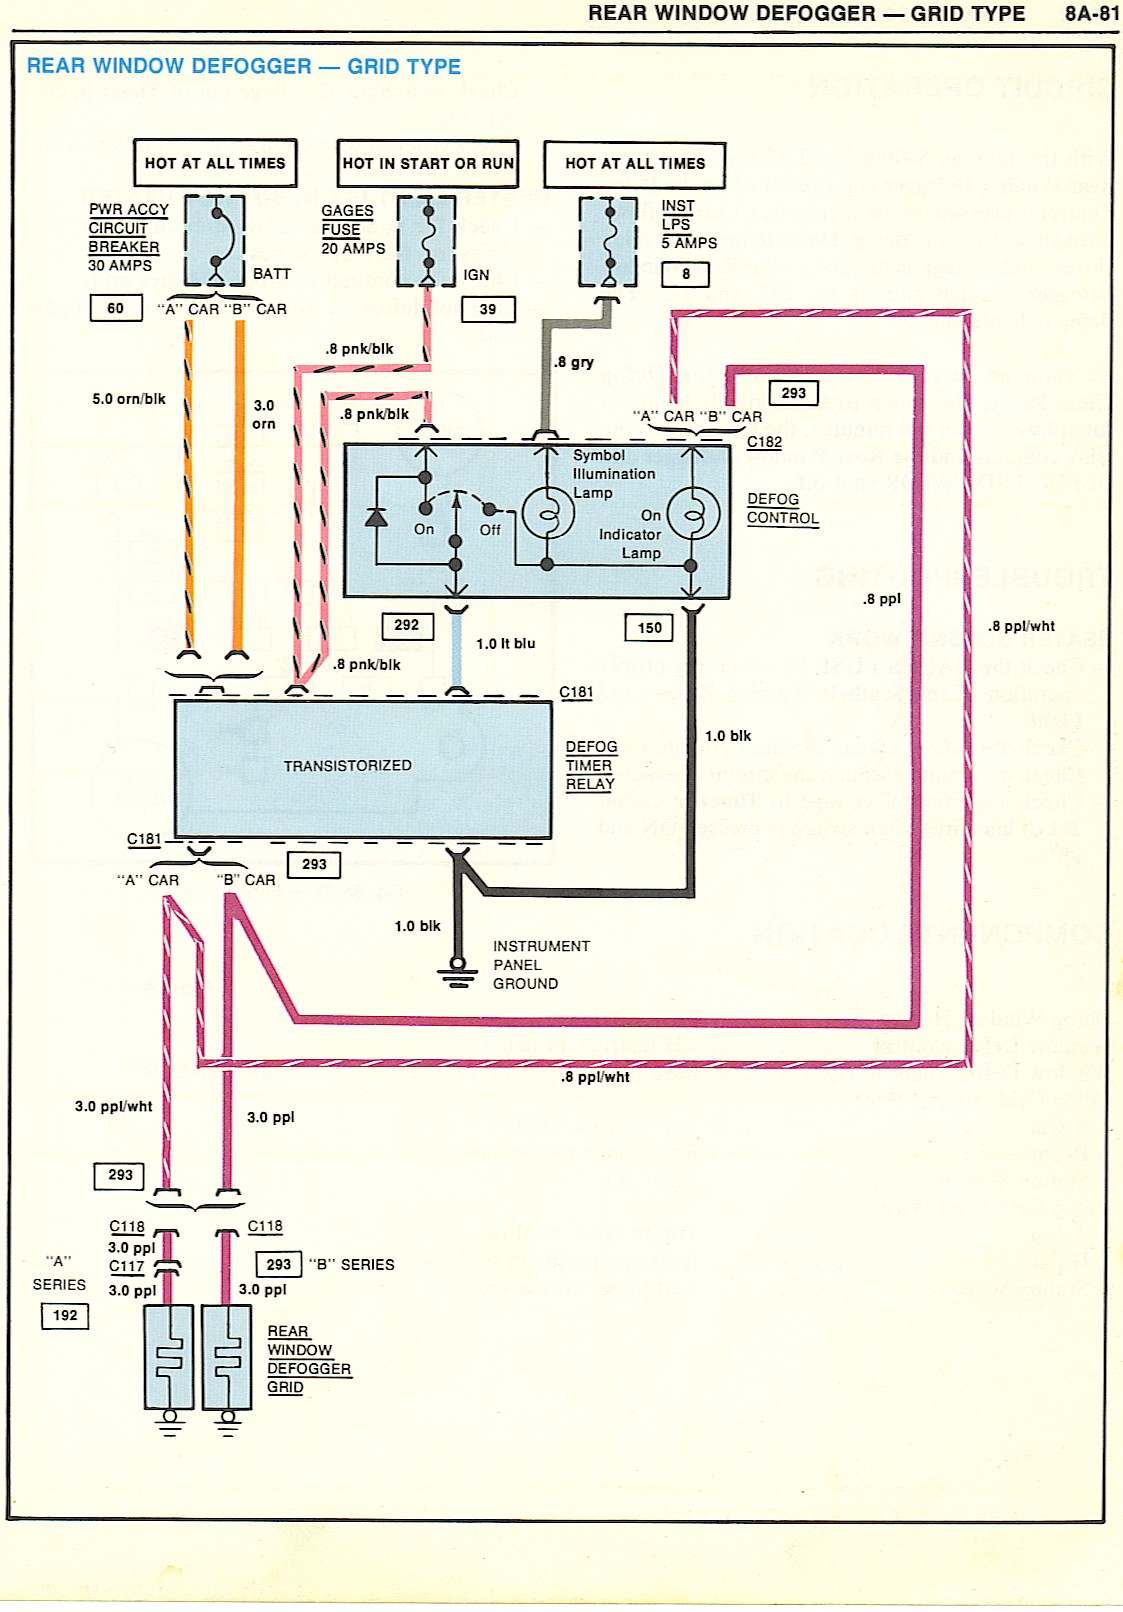 RearWindowDefogger wiring diagrams Ford Alternator Wiring Diagram at bayanpartner.co